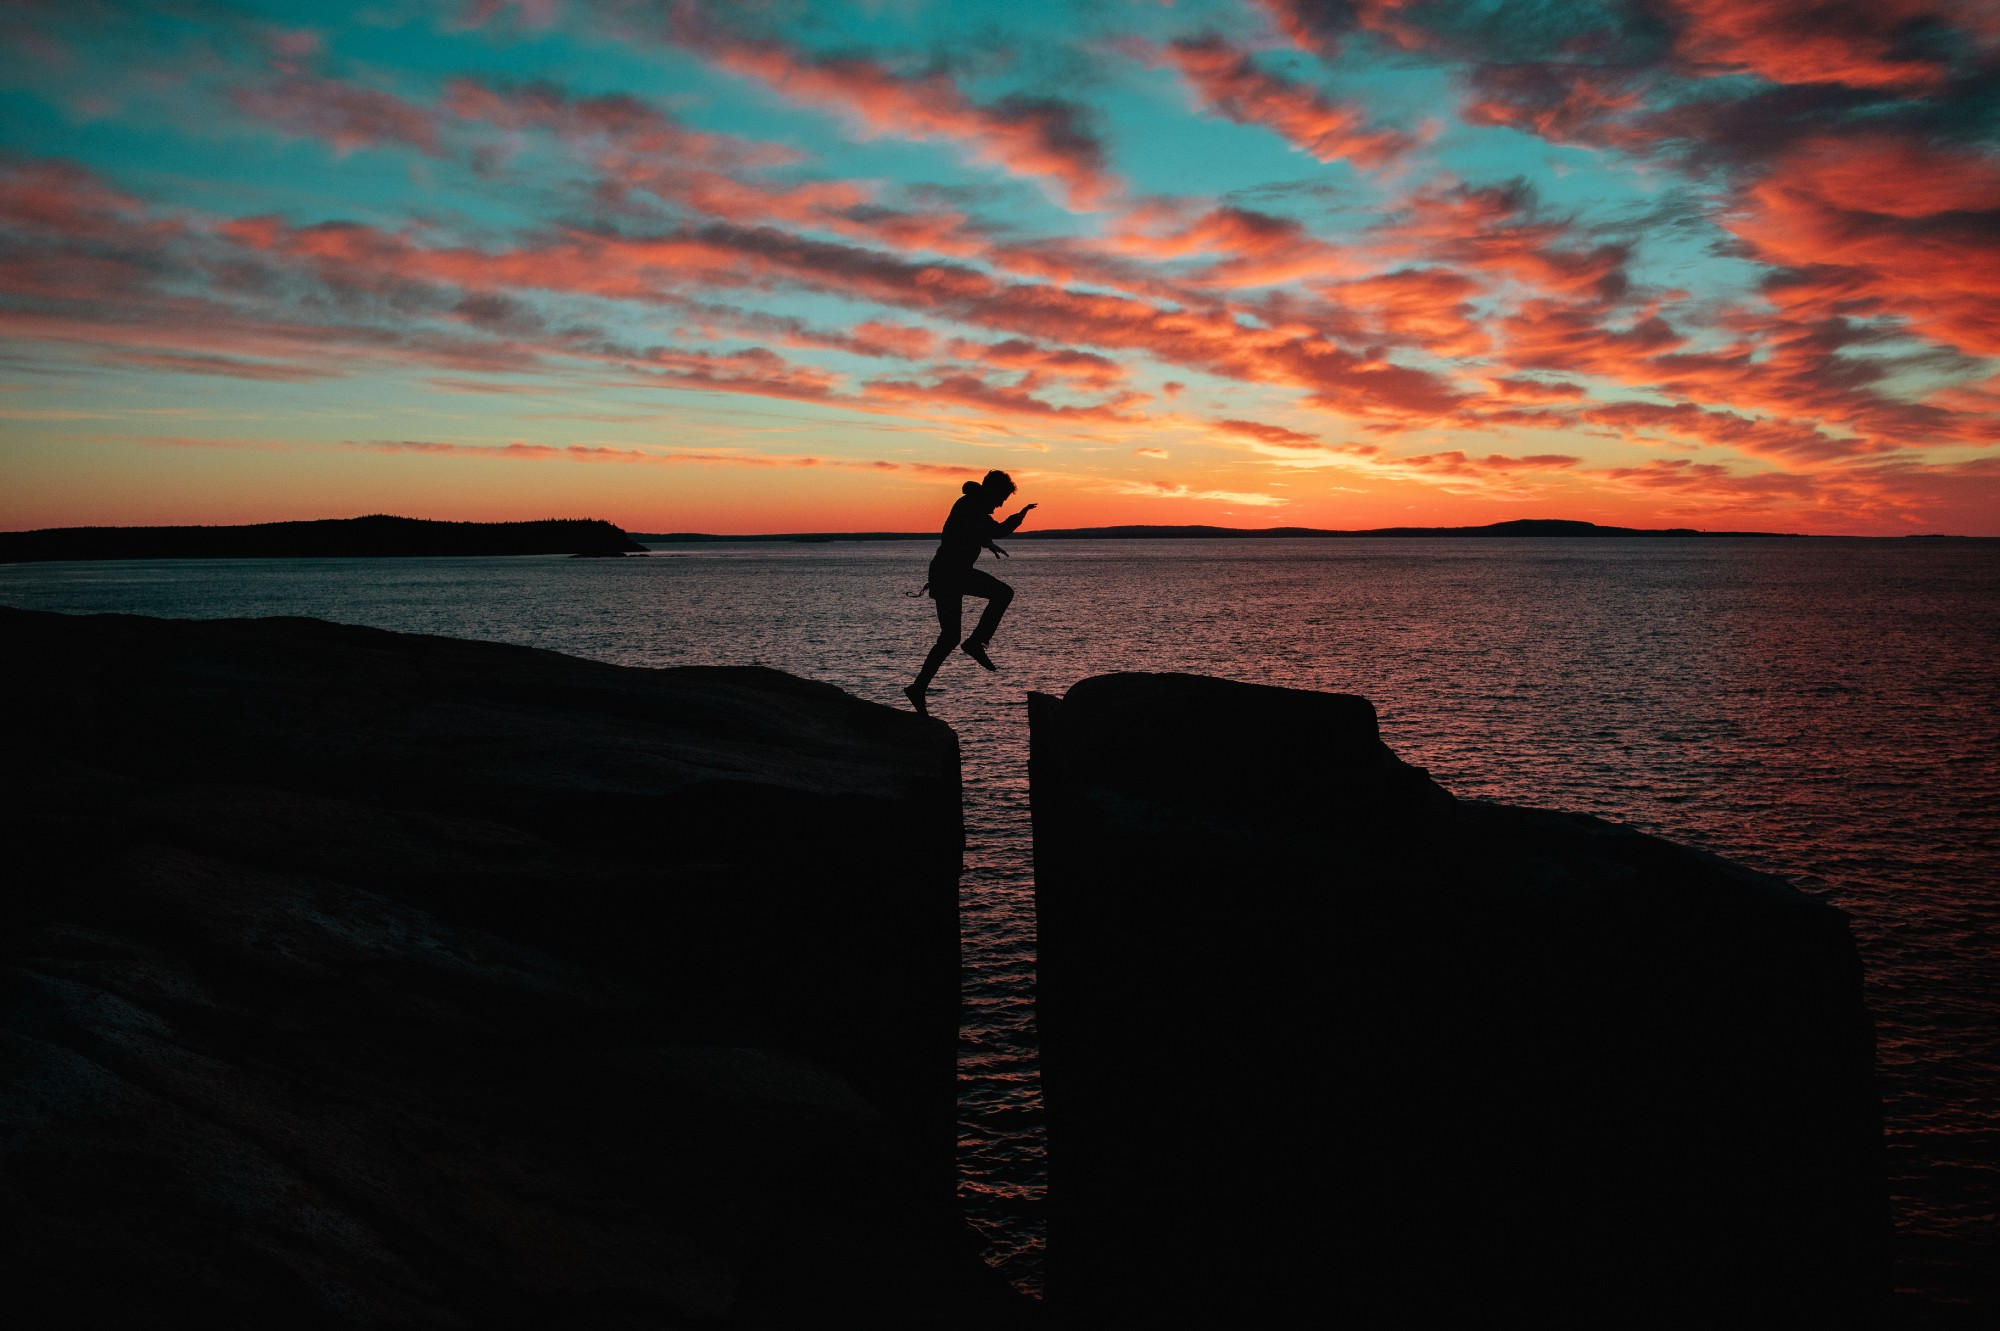 A silhouette of a person jumping over rocks at dusk.